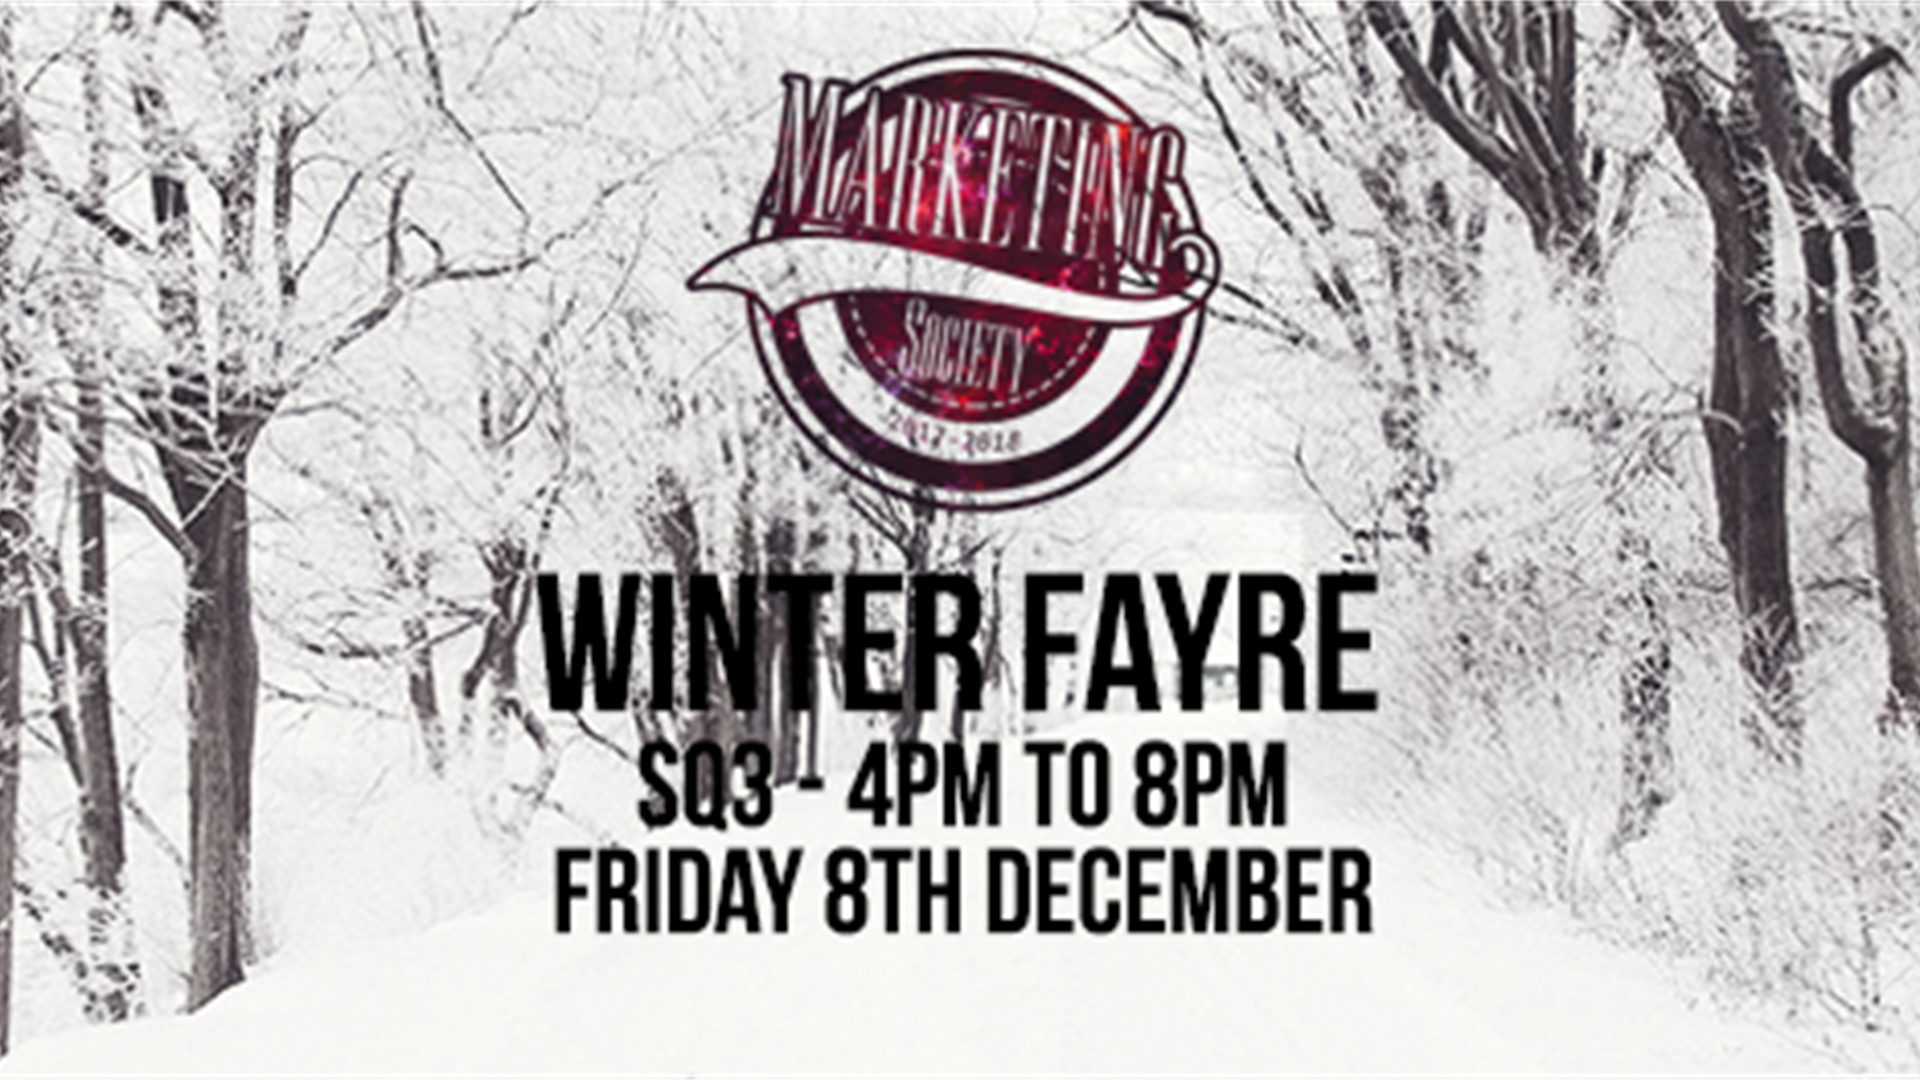 Marketing Society Winter Fayre